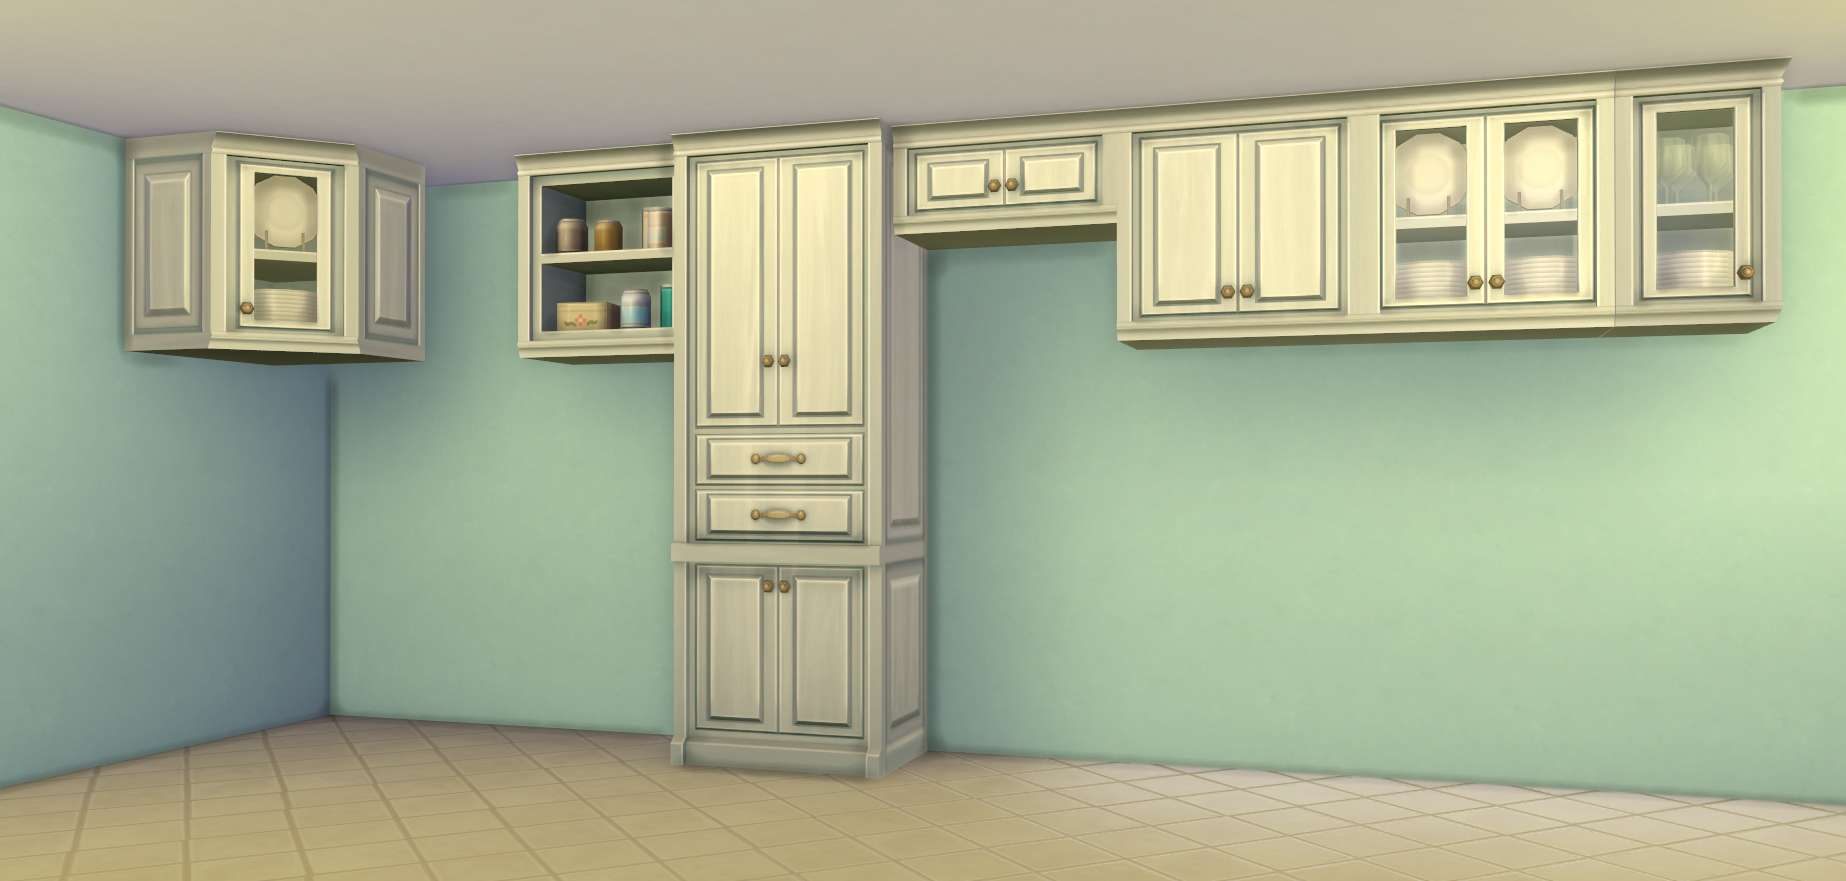 Building Kitchen Cabinets Video The Sims 4 Building Counters Cabinets And Islands